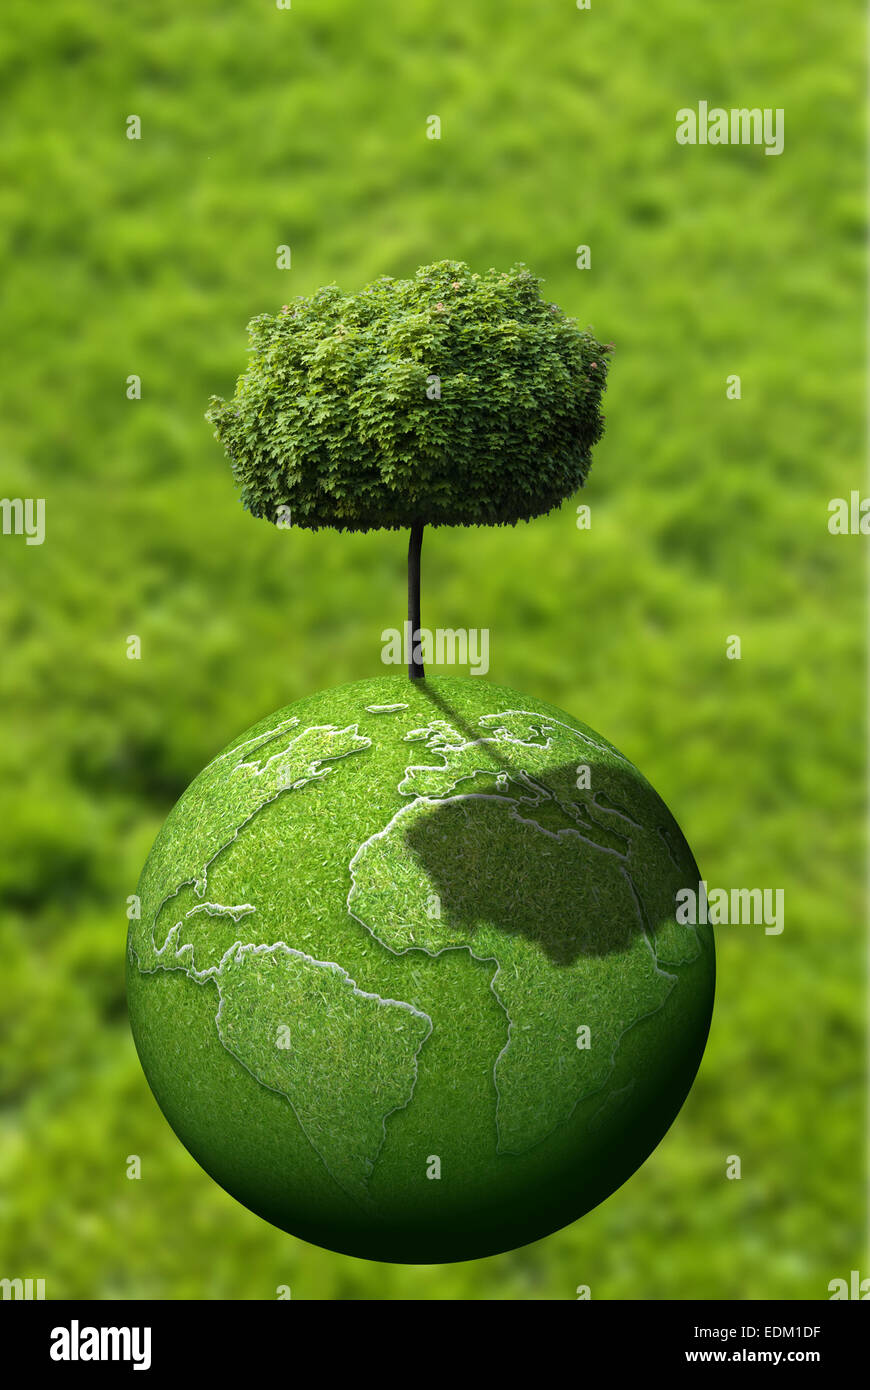 green tree on green planet Earth - Stock Image